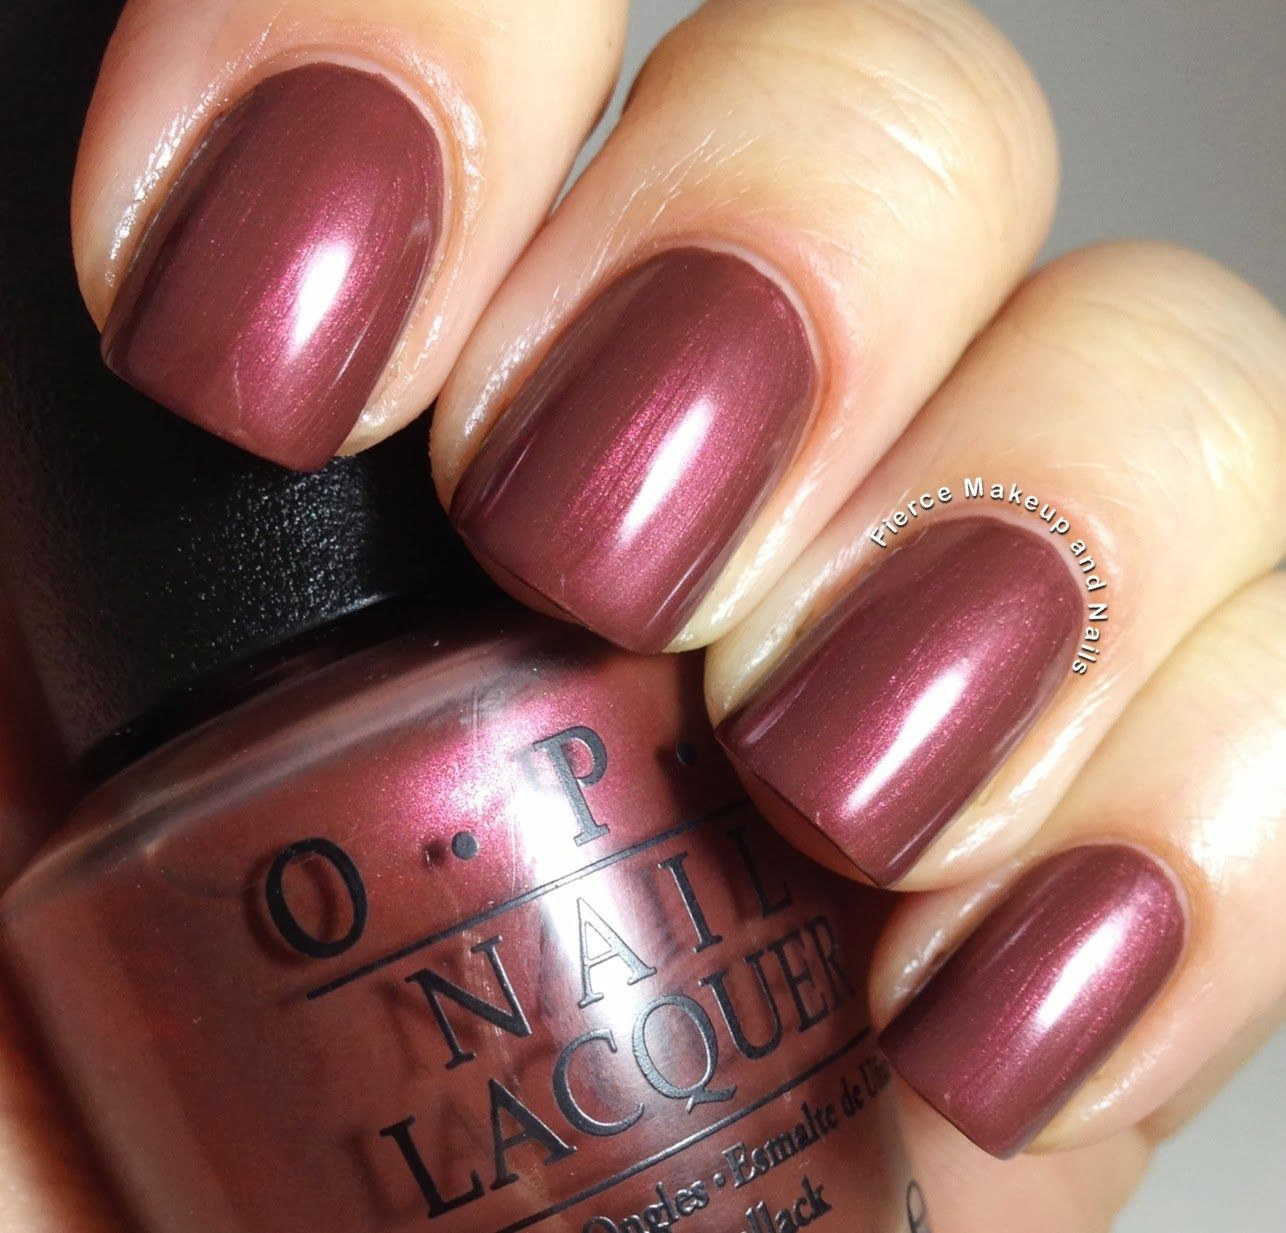 Fierce Makeup and Nails: OPI San Francisco Collection Fall/Winter 2013 Swatches and Review! via @Gina Gab Solórzano Gab Solórzano Craven